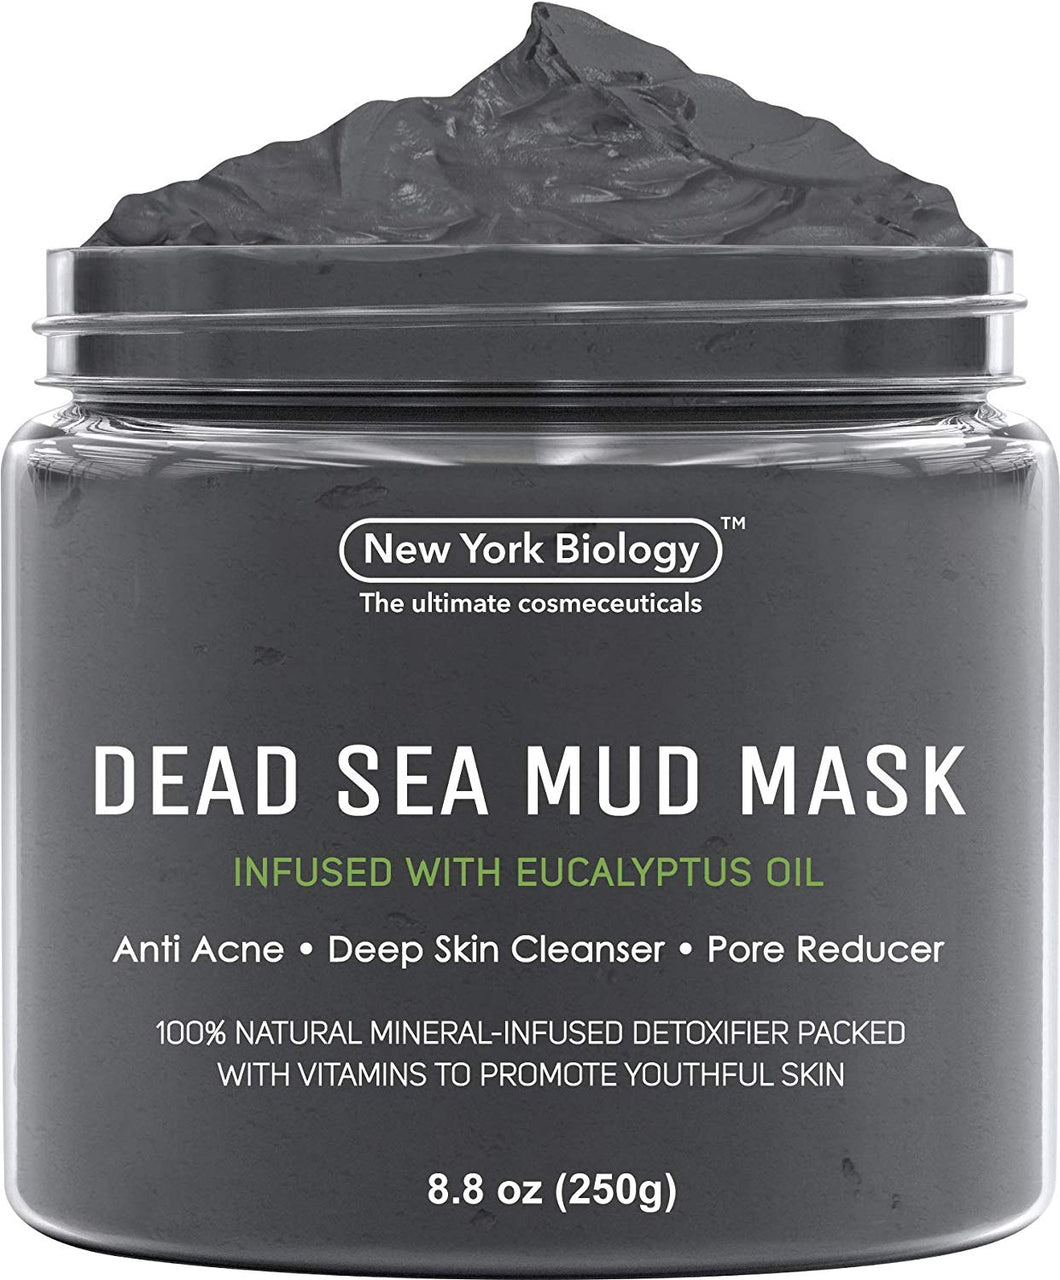 Dead Sea Mud Mask Infused with Eucalyptus - 100% Natural Spa Quality - Best Pore Reducer & Minimizer to Help Treat Acne, Blackheads & Oily Skin – Tightens Skin for a Visibly Healthier, Clearer, Smo